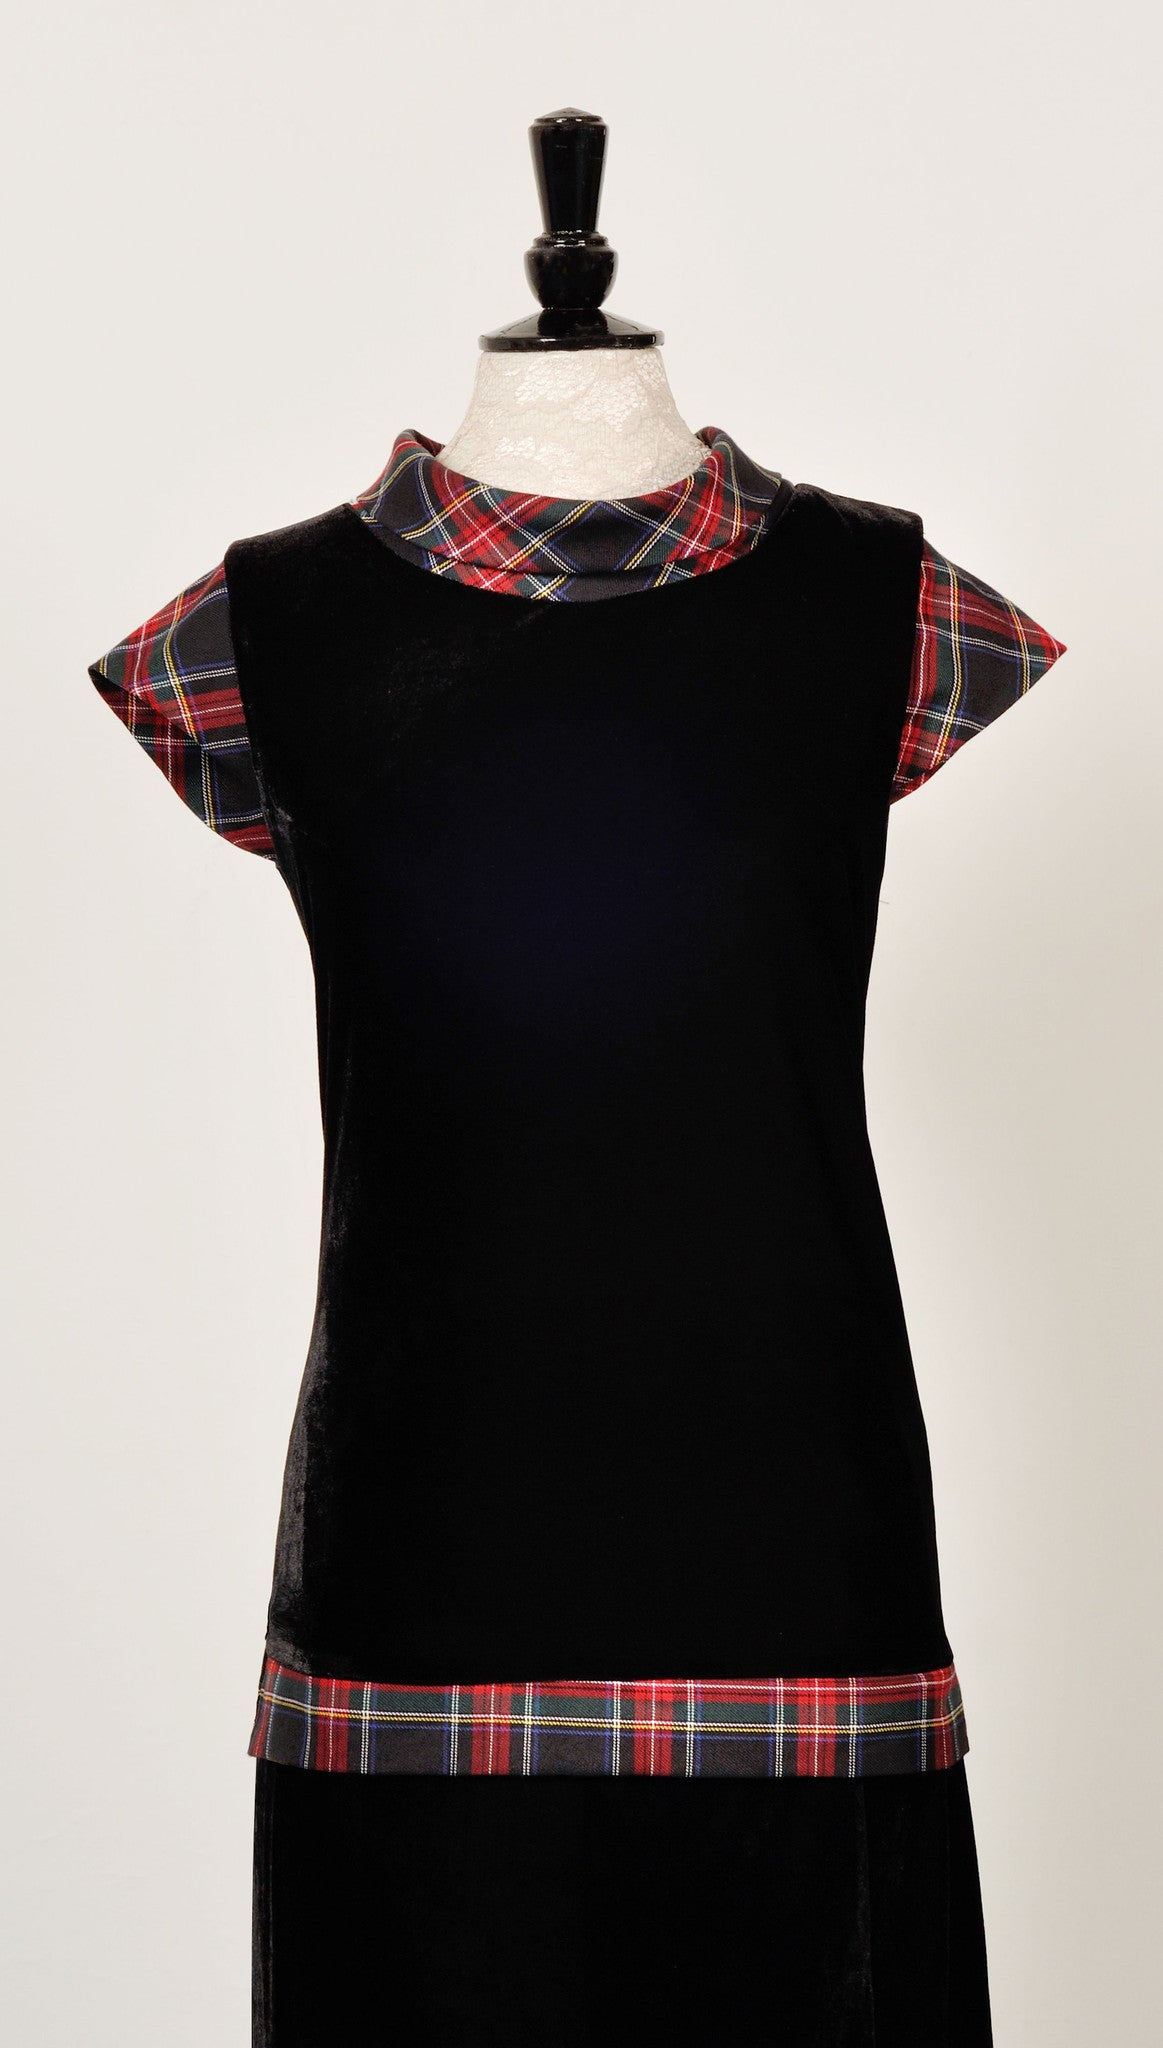 Maggie velvet top with Black Stewart tartan trim